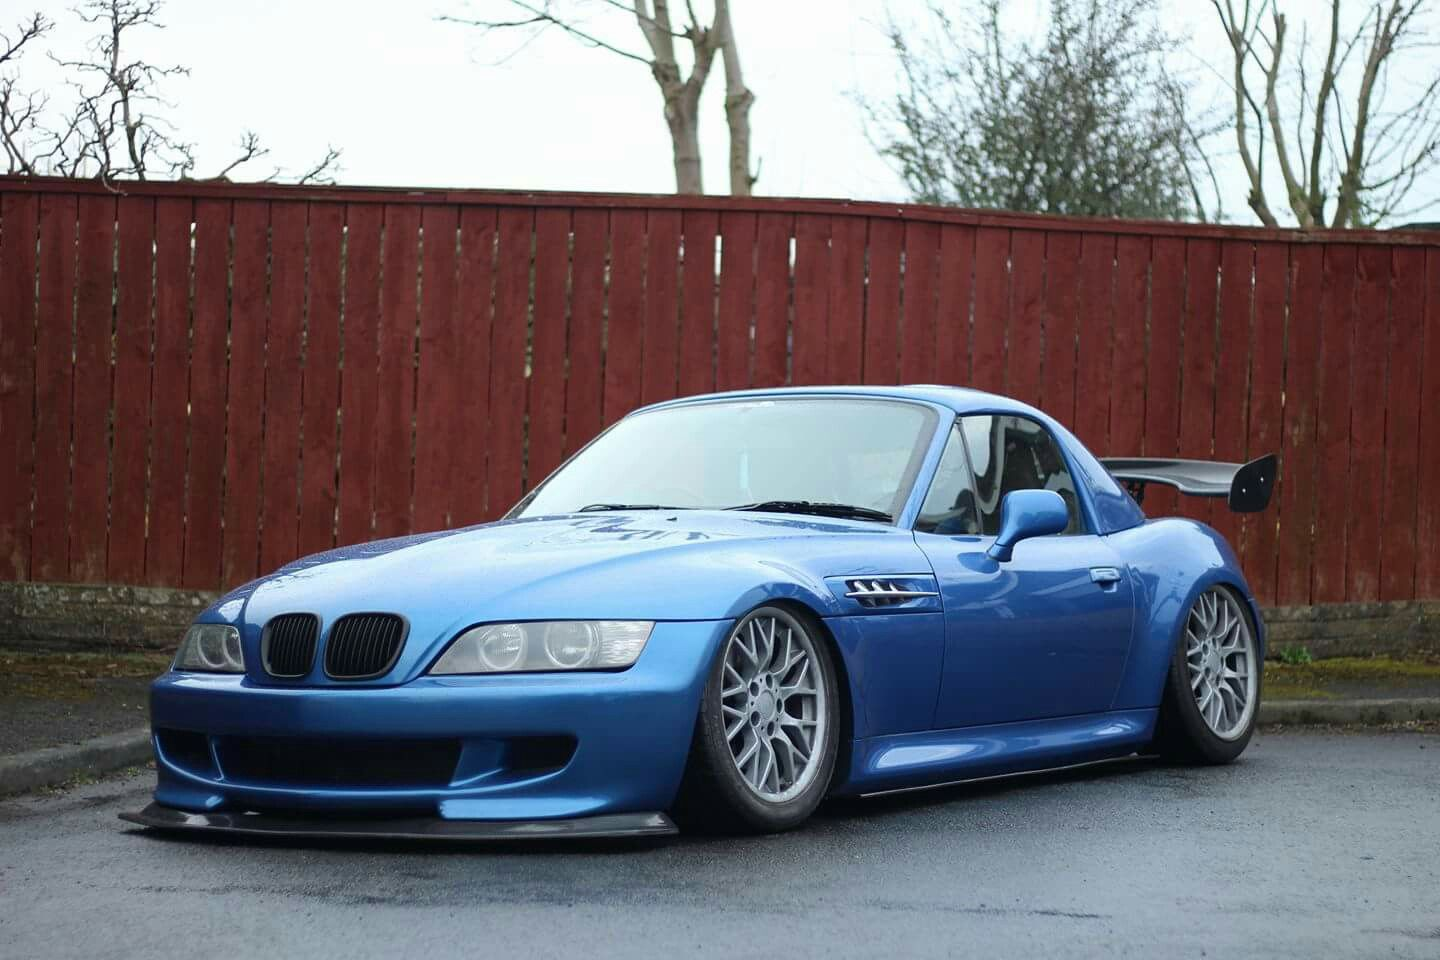 small resolution of bmw z3 m roadster blue slammed